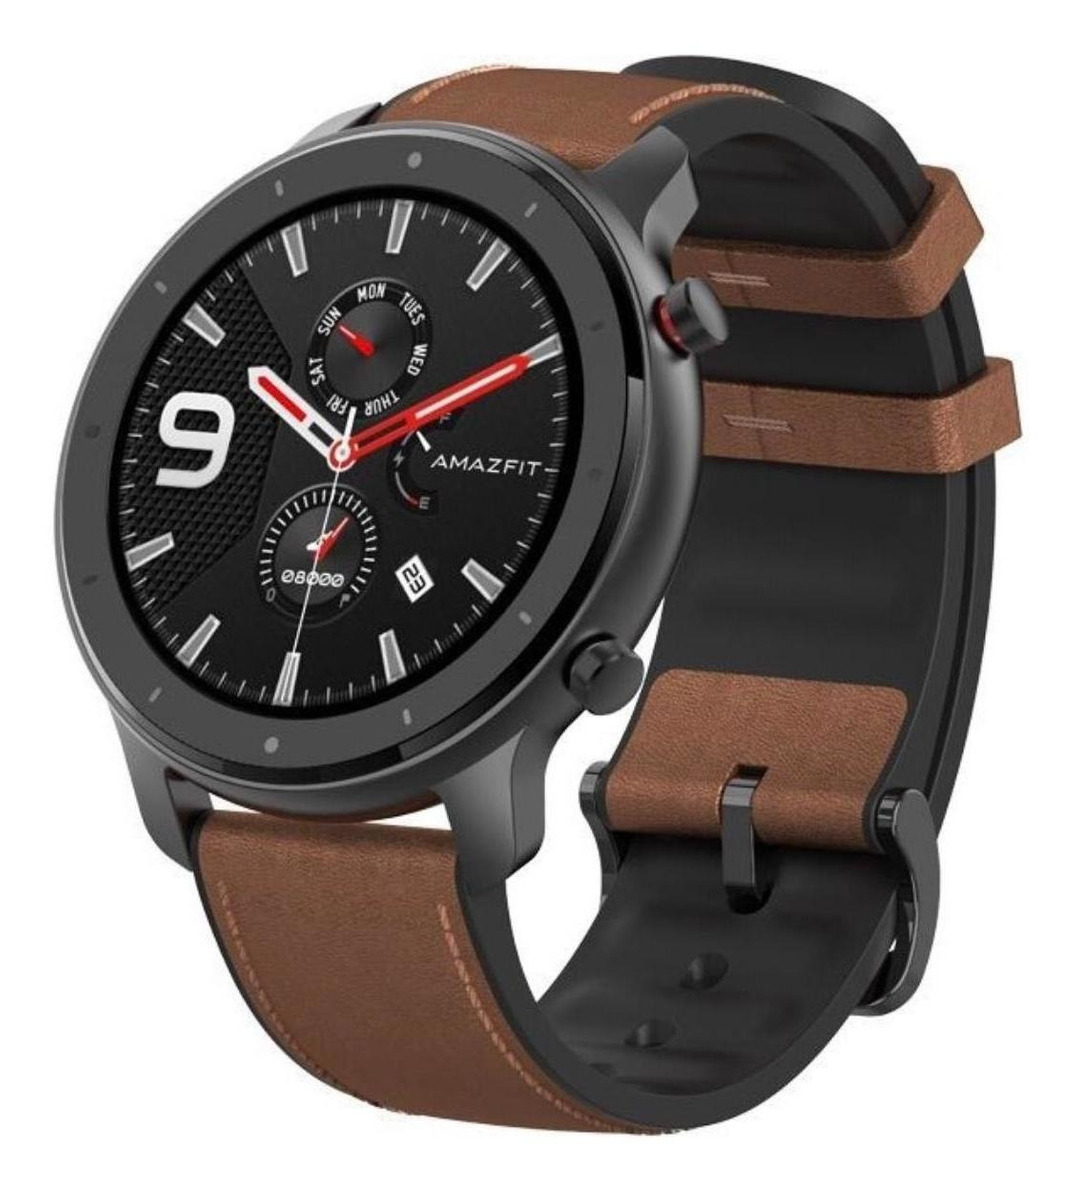 https://http2.mlstatic.com/xiaomi-amazfit-gtr-smartwatch-version-internacional-47mm-D_NQ_NP_966776-MLM31594874870_072019-F.jpg